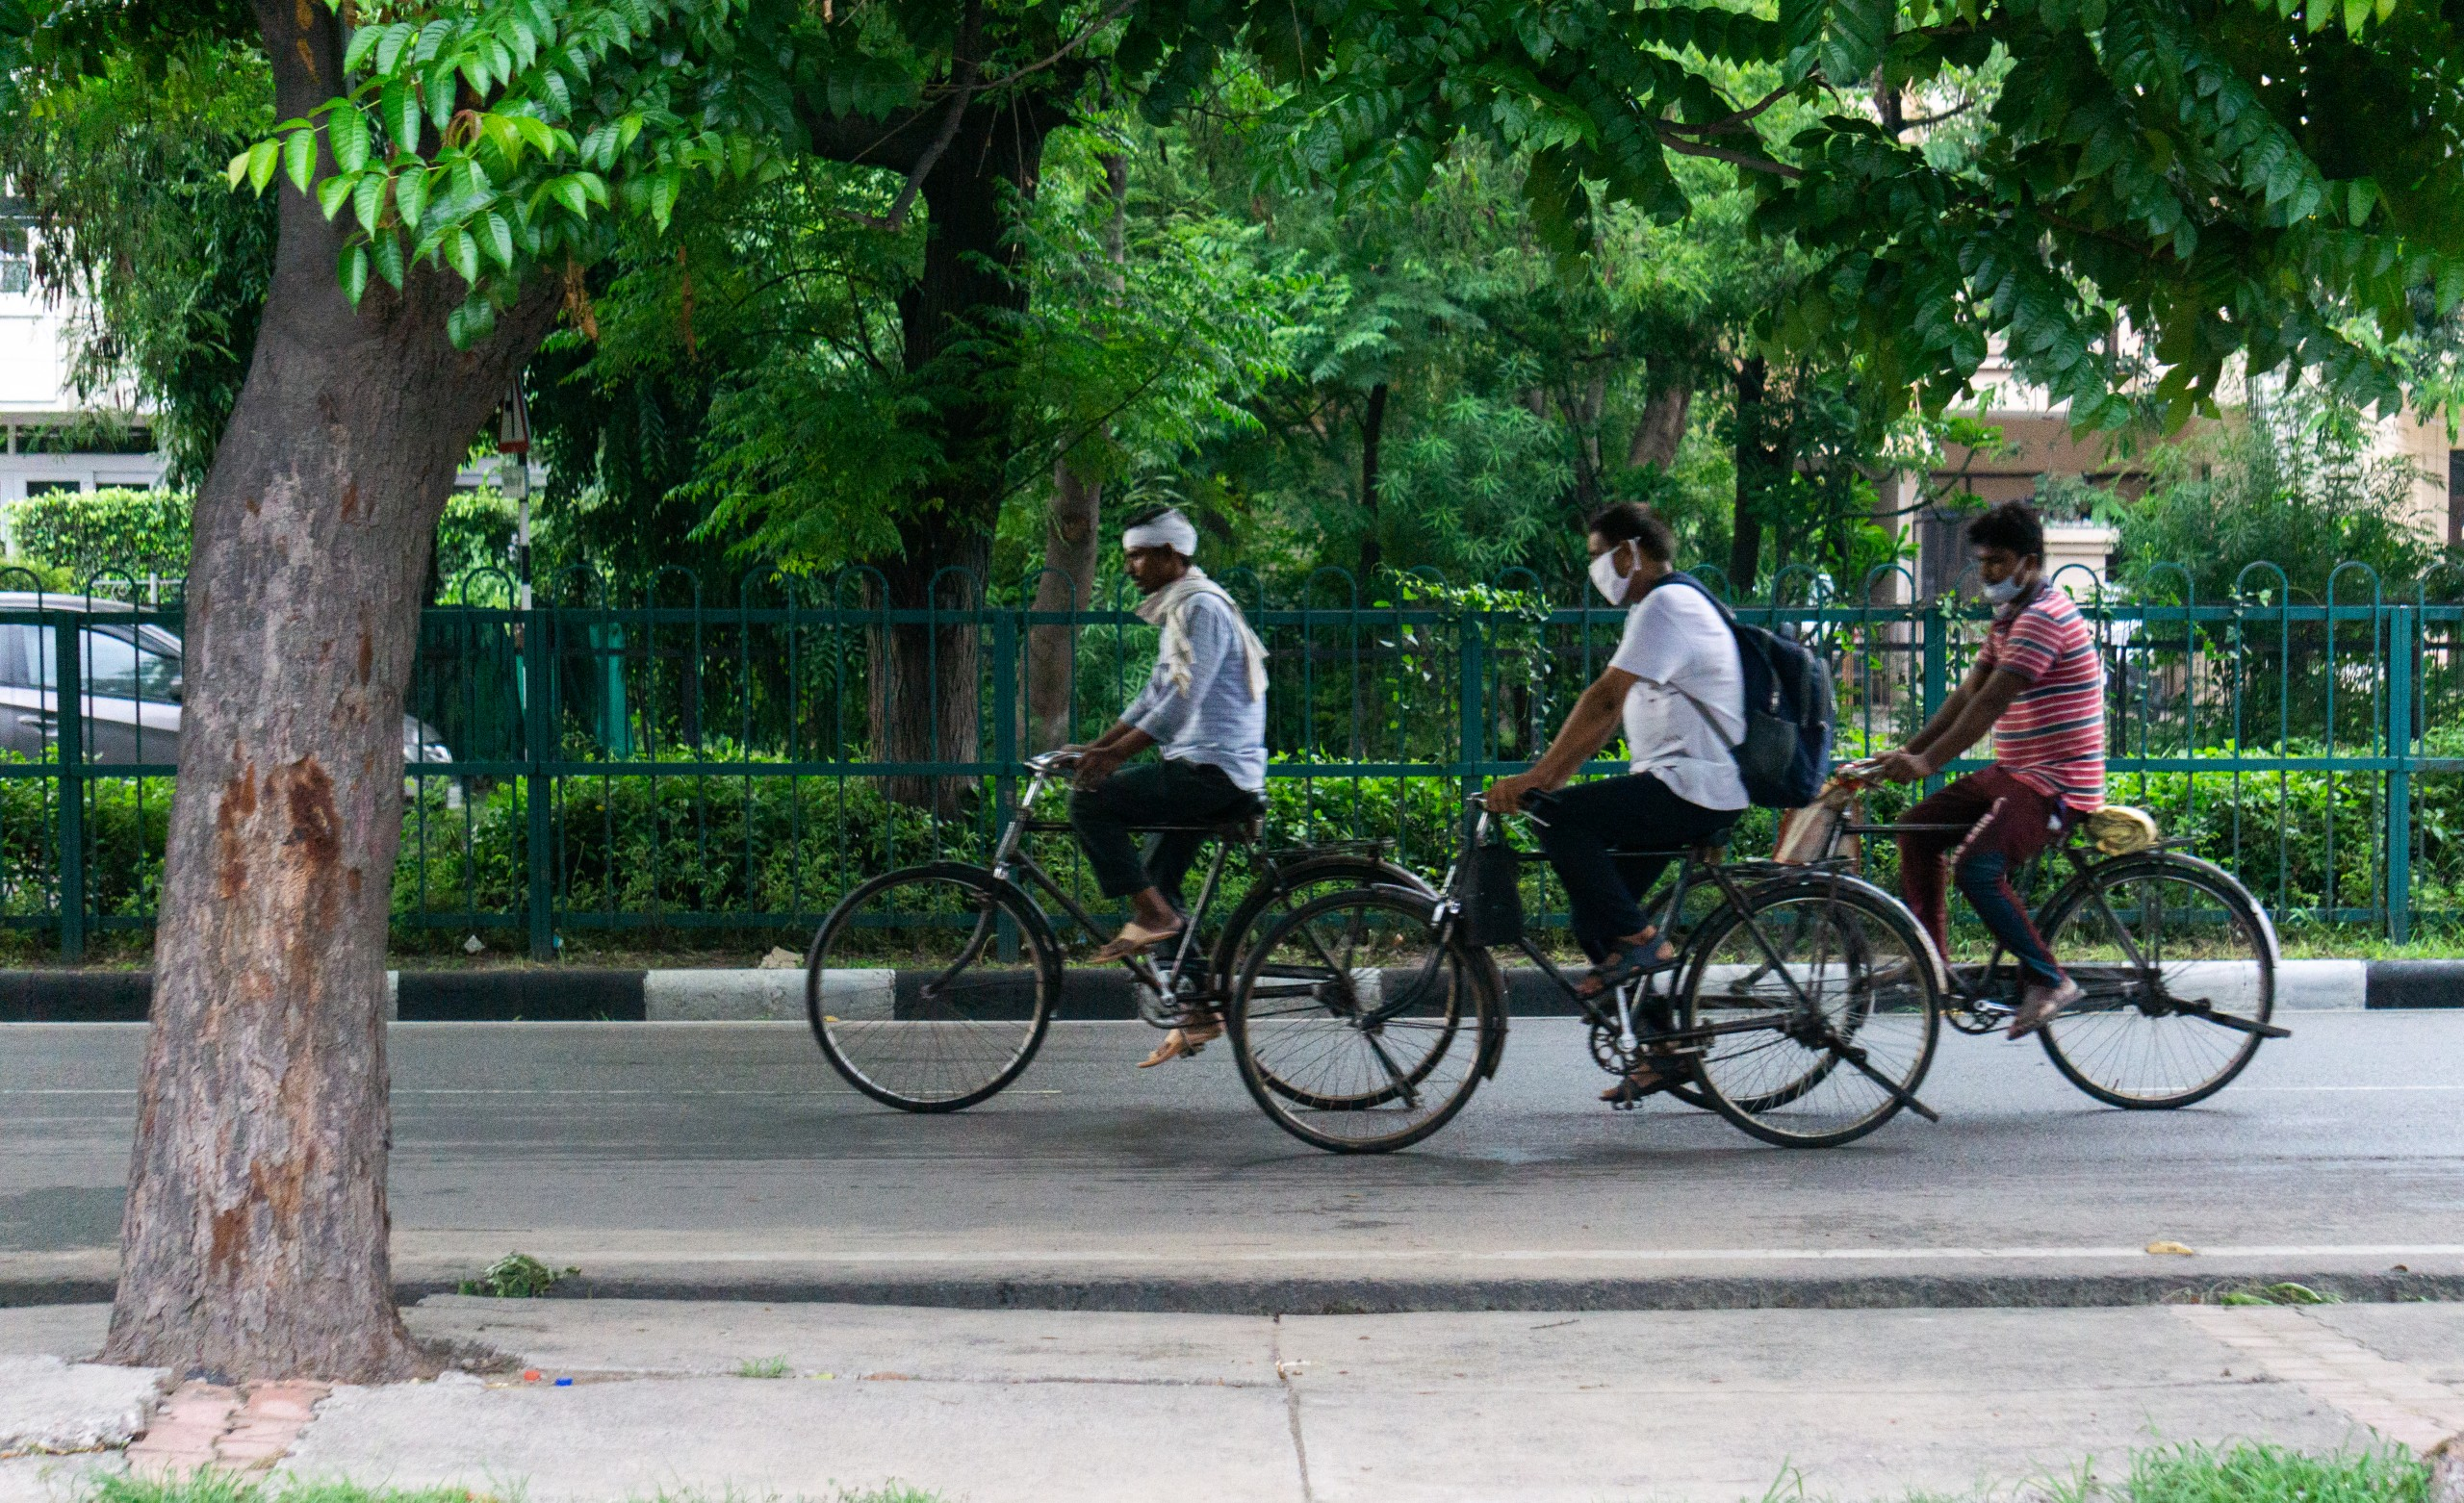 indian cyclists going to work